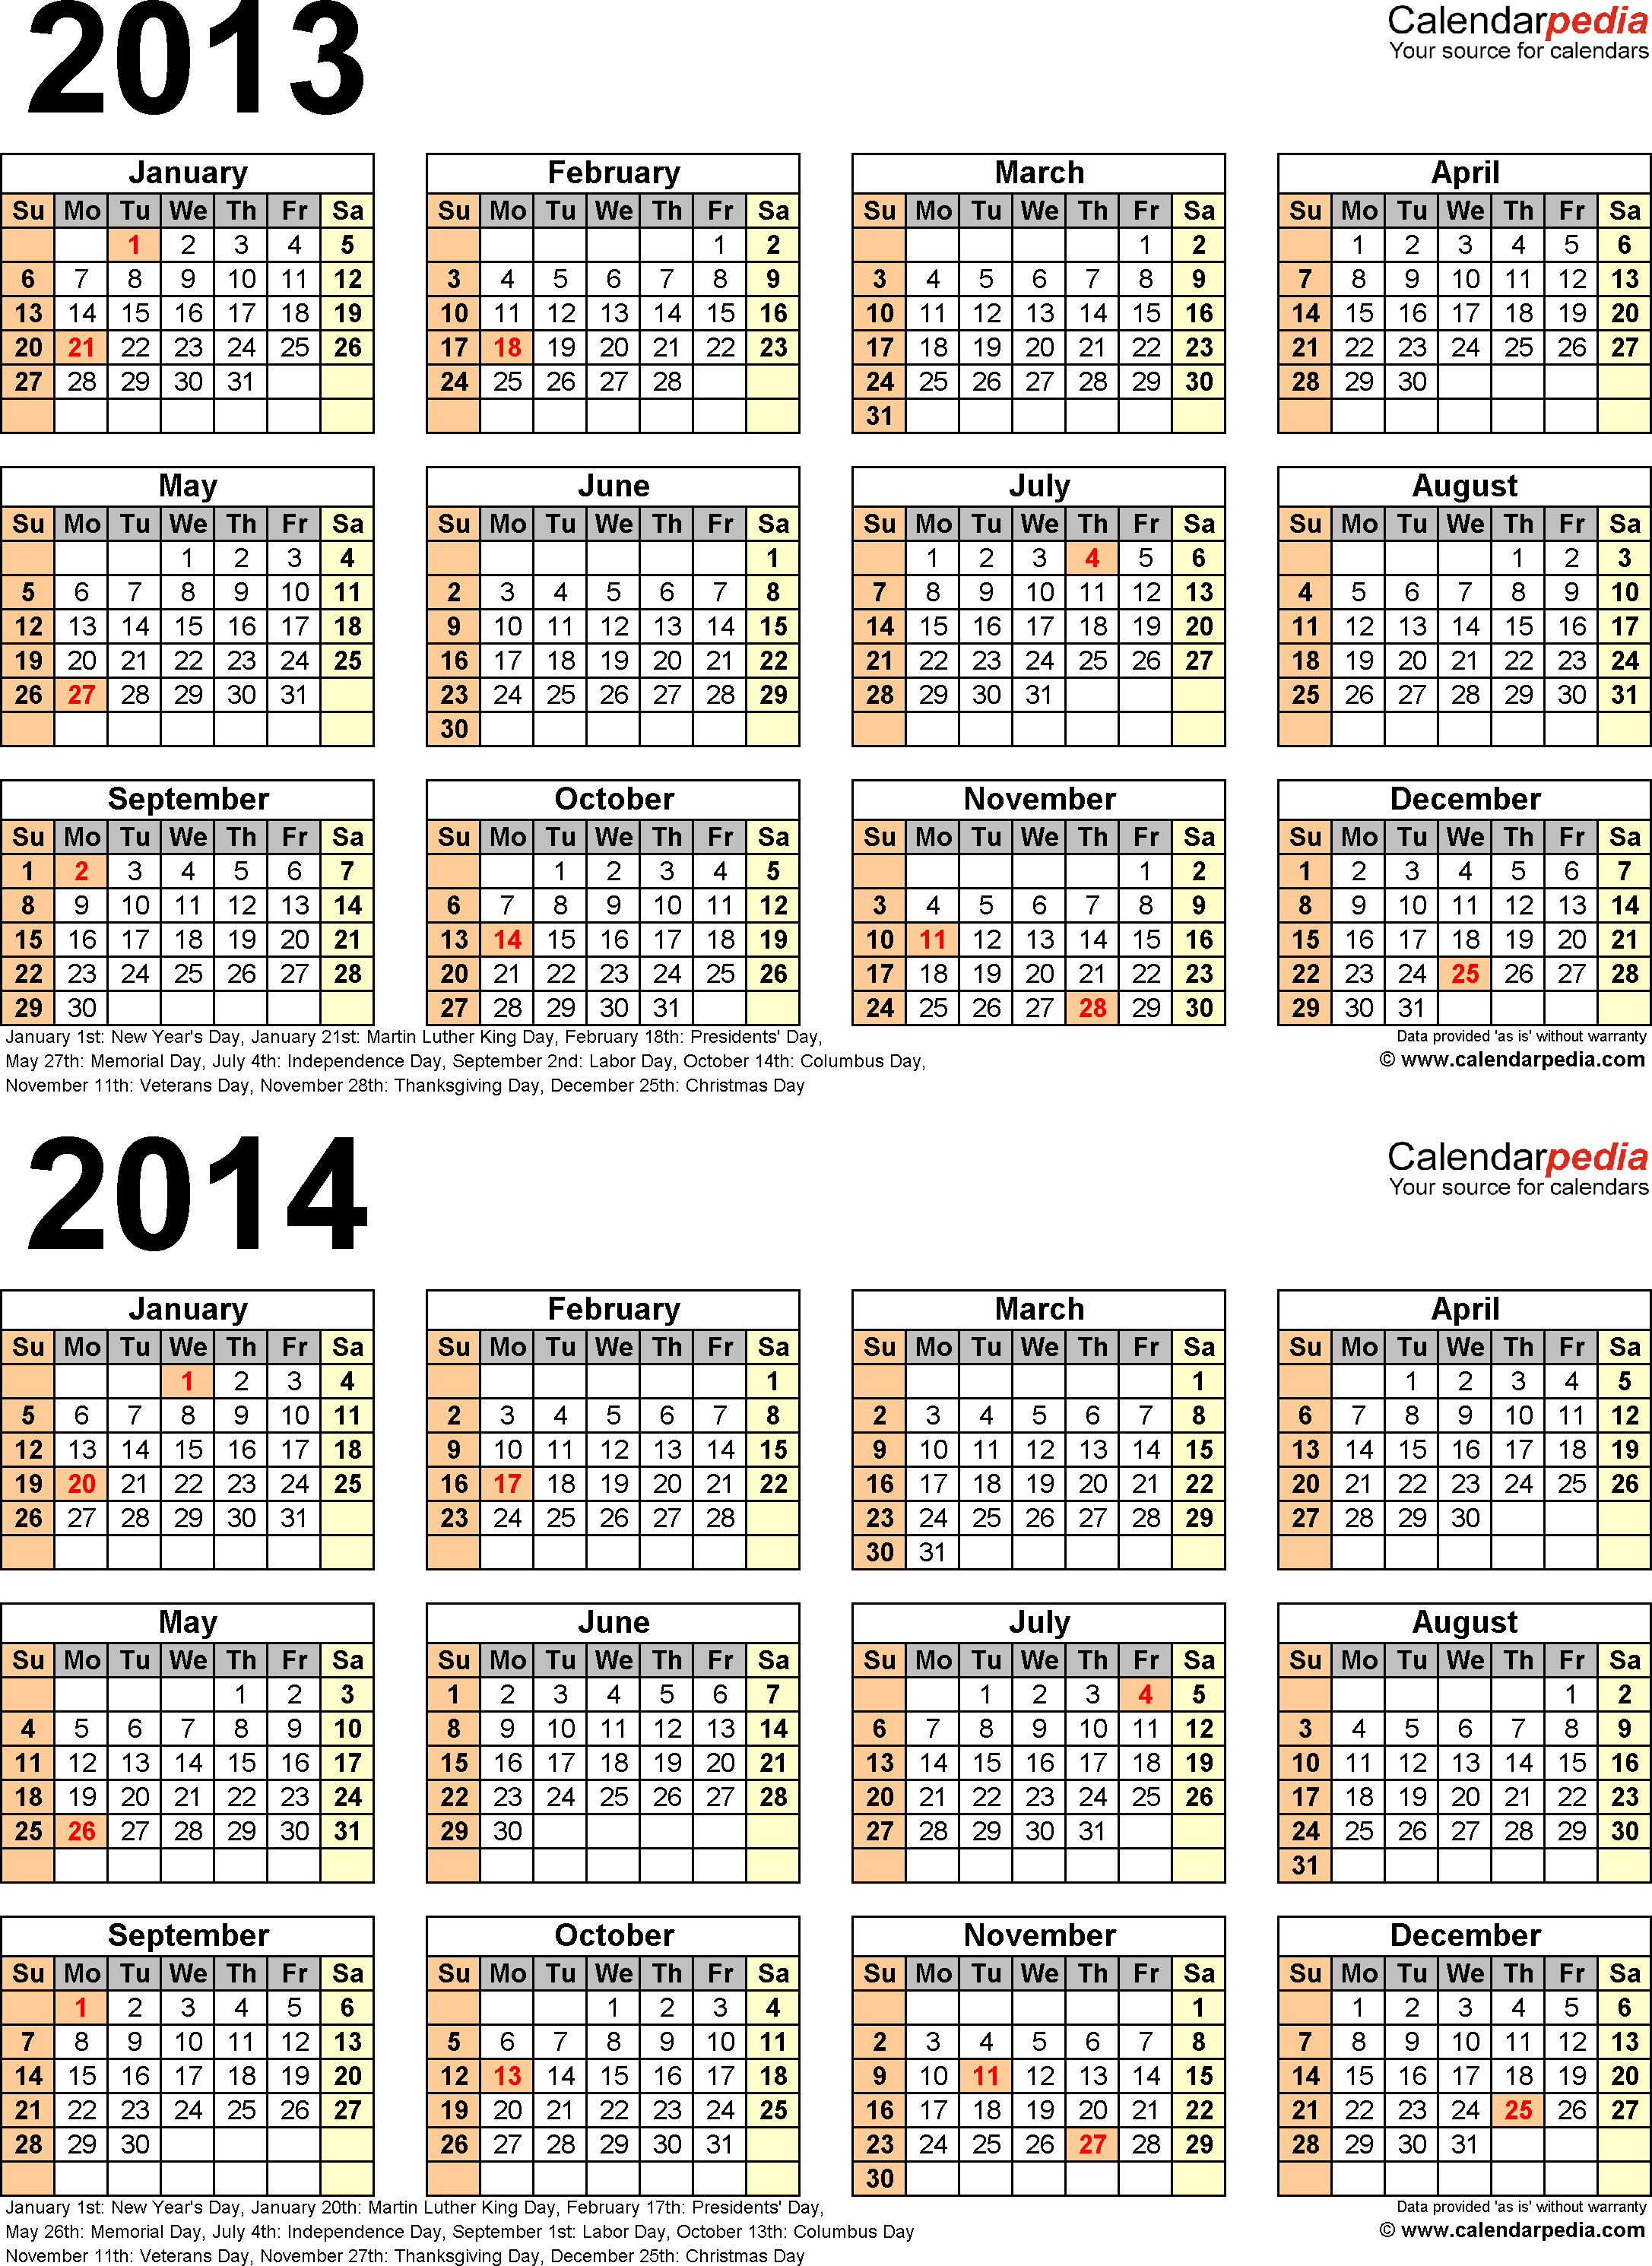 Template 4: Excel template for two year calendar 2013/2014 (portrait orientation, 1 page)